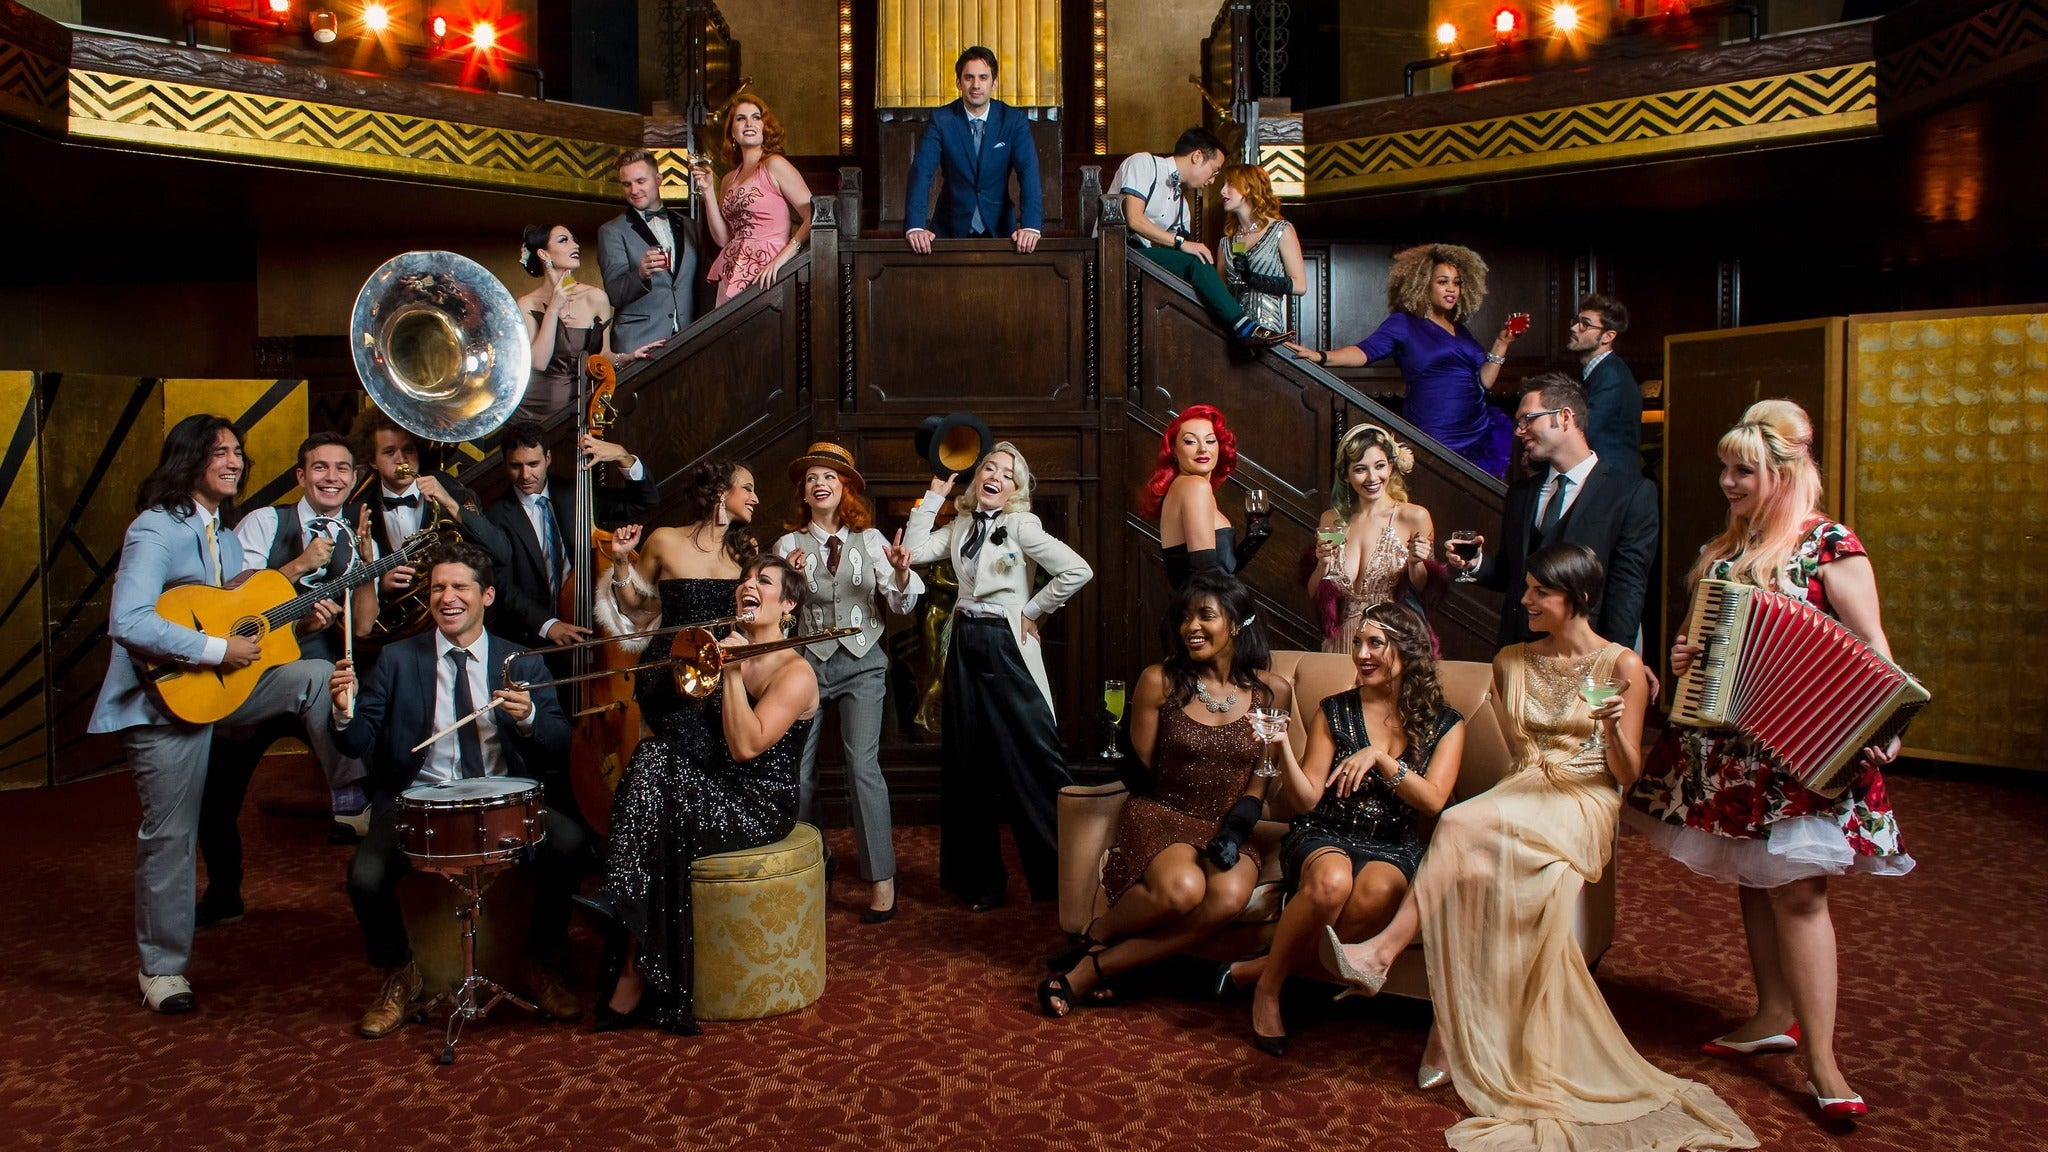 Postmodern Jukebox: A Very Postmodern Christmas Tour